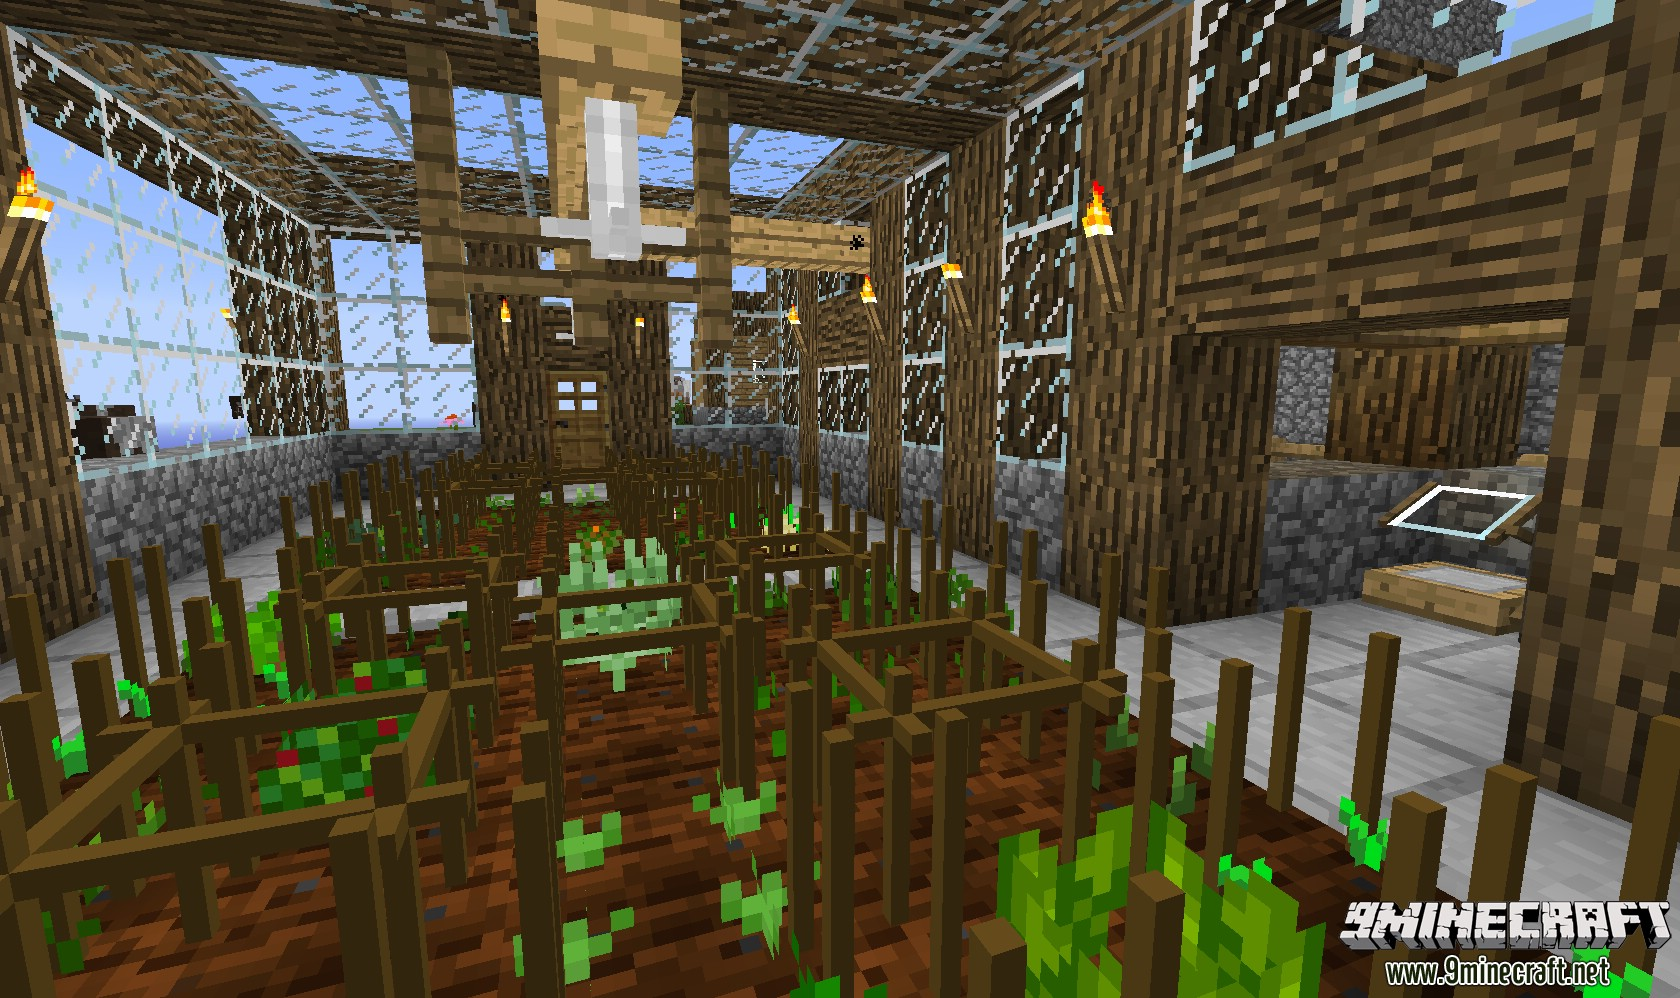 1485208634_225_agricraft-mod-1-10-21-7-10-agriculture-in-minecraft AgriCraft Mod 1.10.2/1.7.10 (Agriculture in Minecraft)